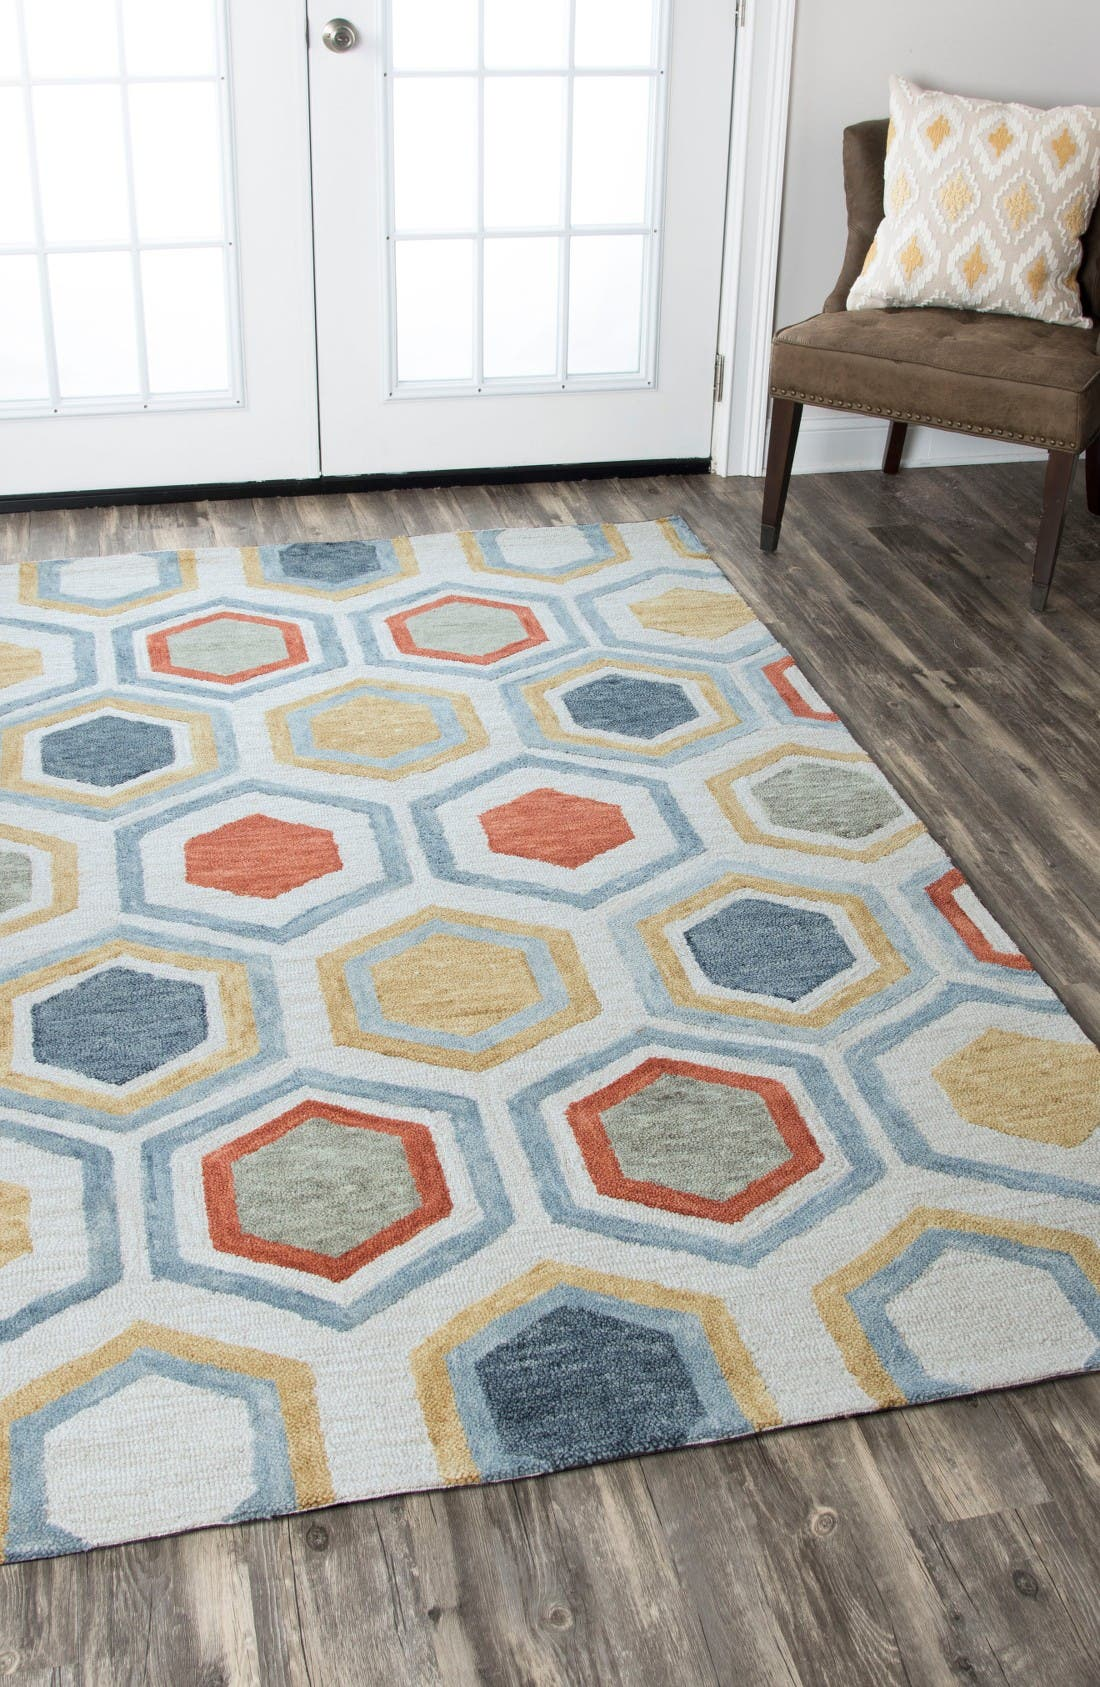 'Lancaster Geometric' Hand Tufted Wool Area Rug,                             Alternate thumbnail 4, color,                             Grey/ Multi